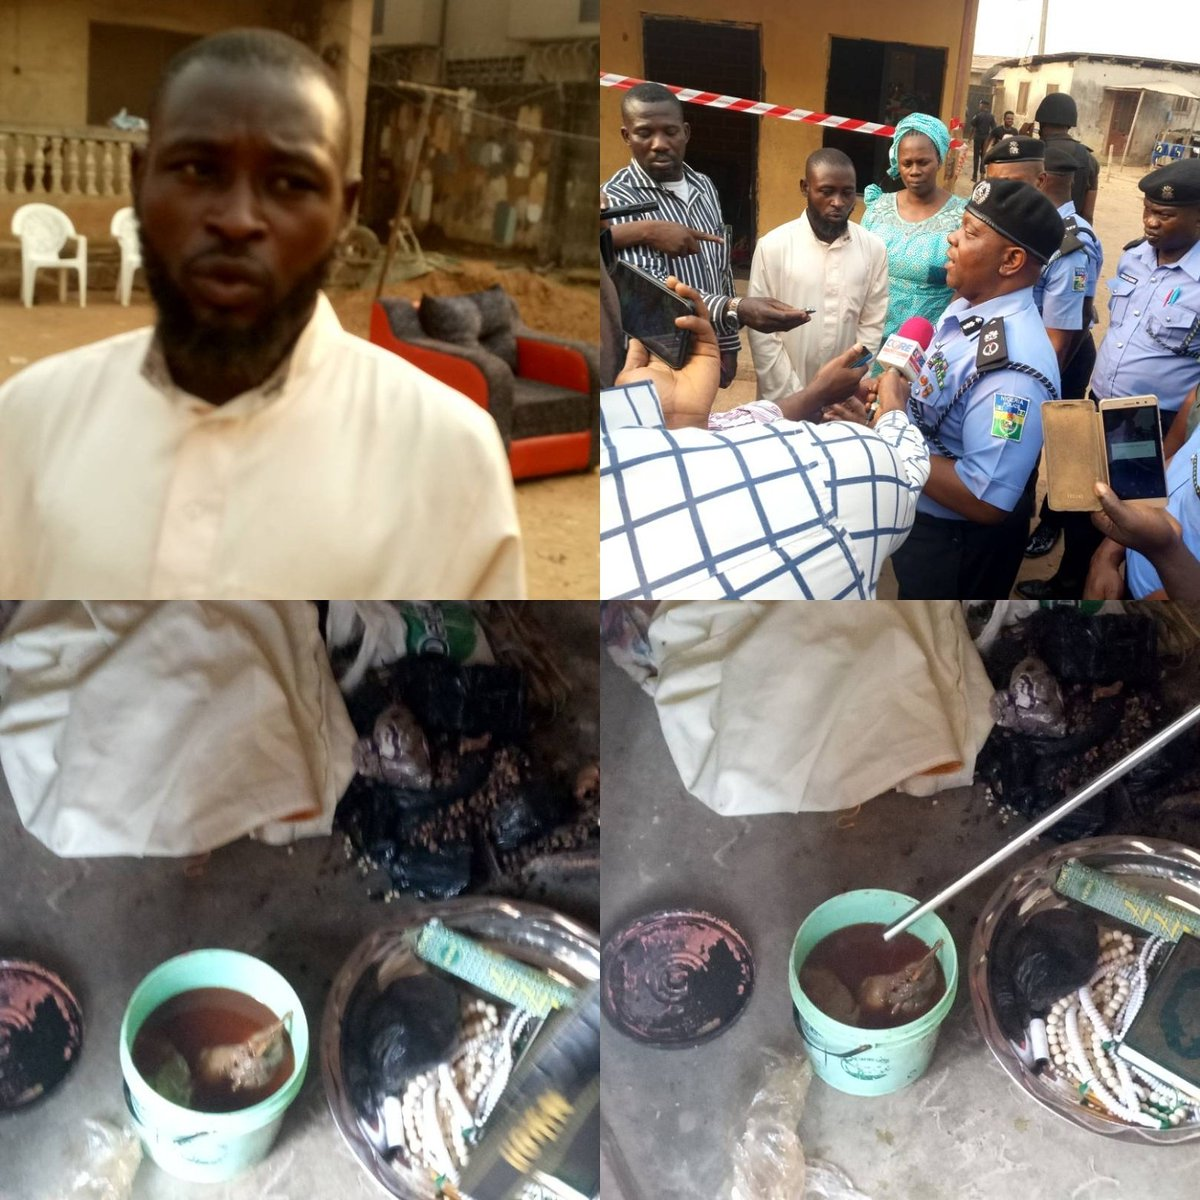 Lagos Police Bust Pair with Body Parts to be Used for Rituals: Belief Has Real World Consequences